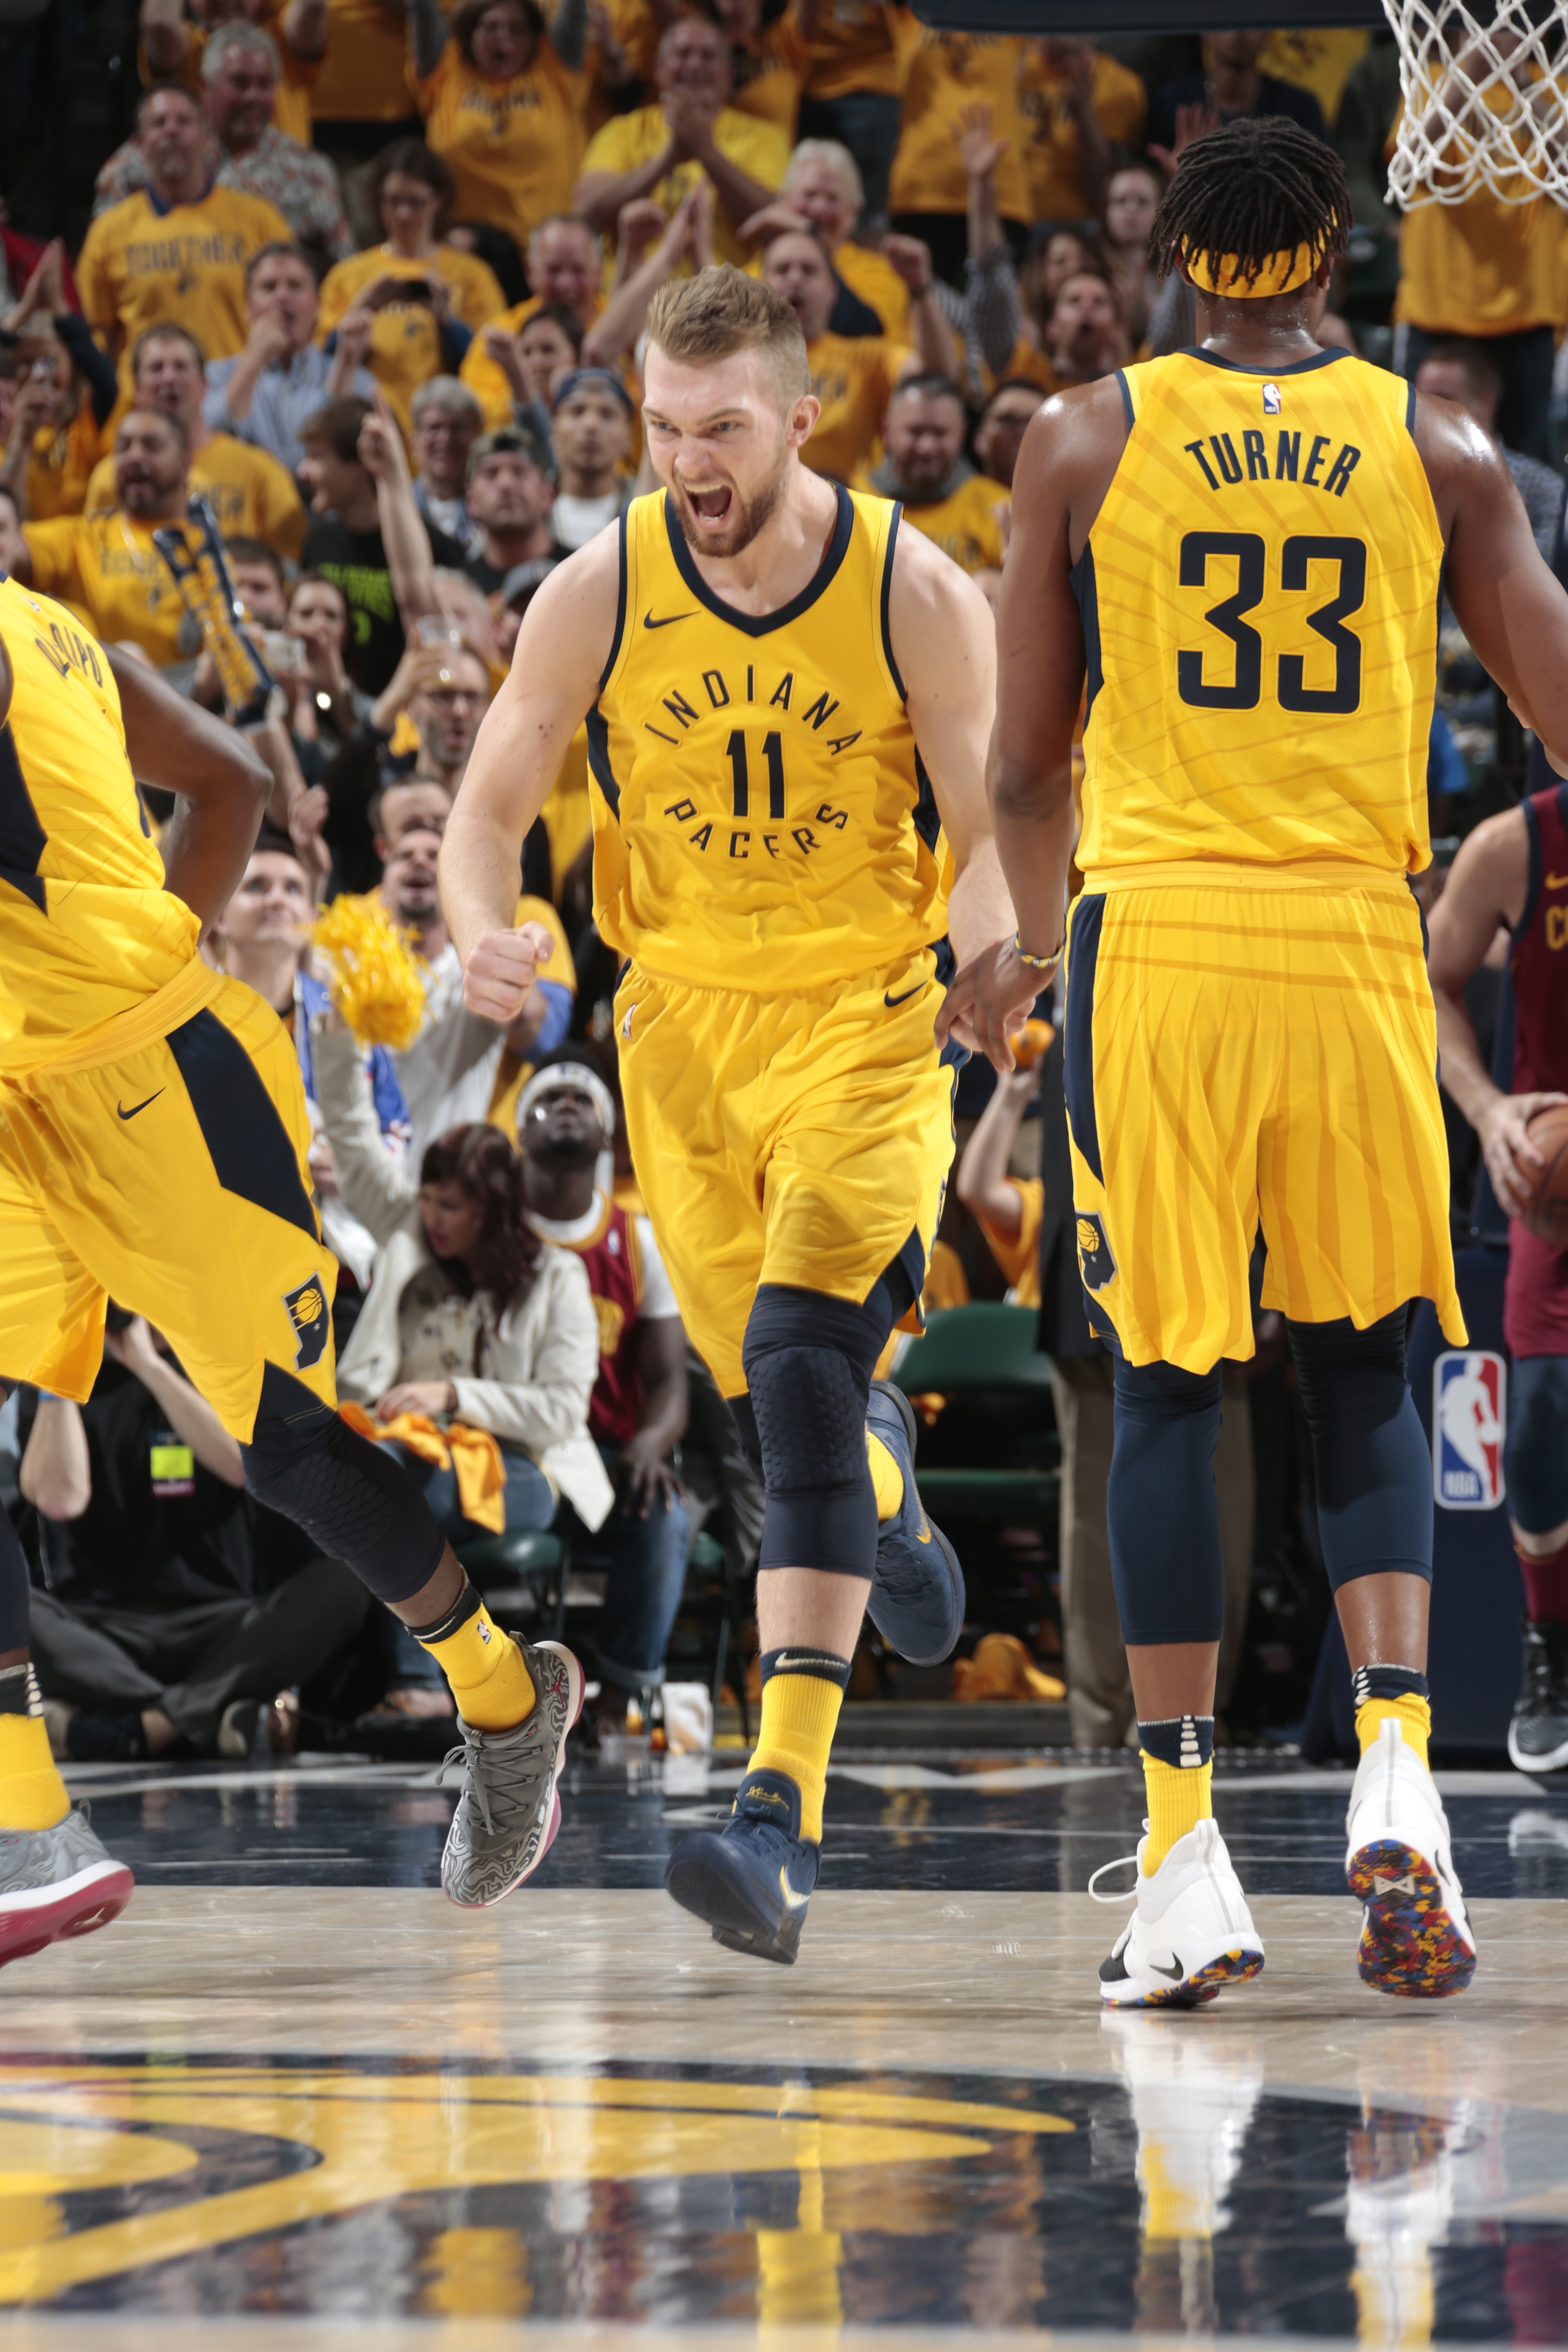 GAME 6 RECAP: Pacers 121, Cavaliers 87